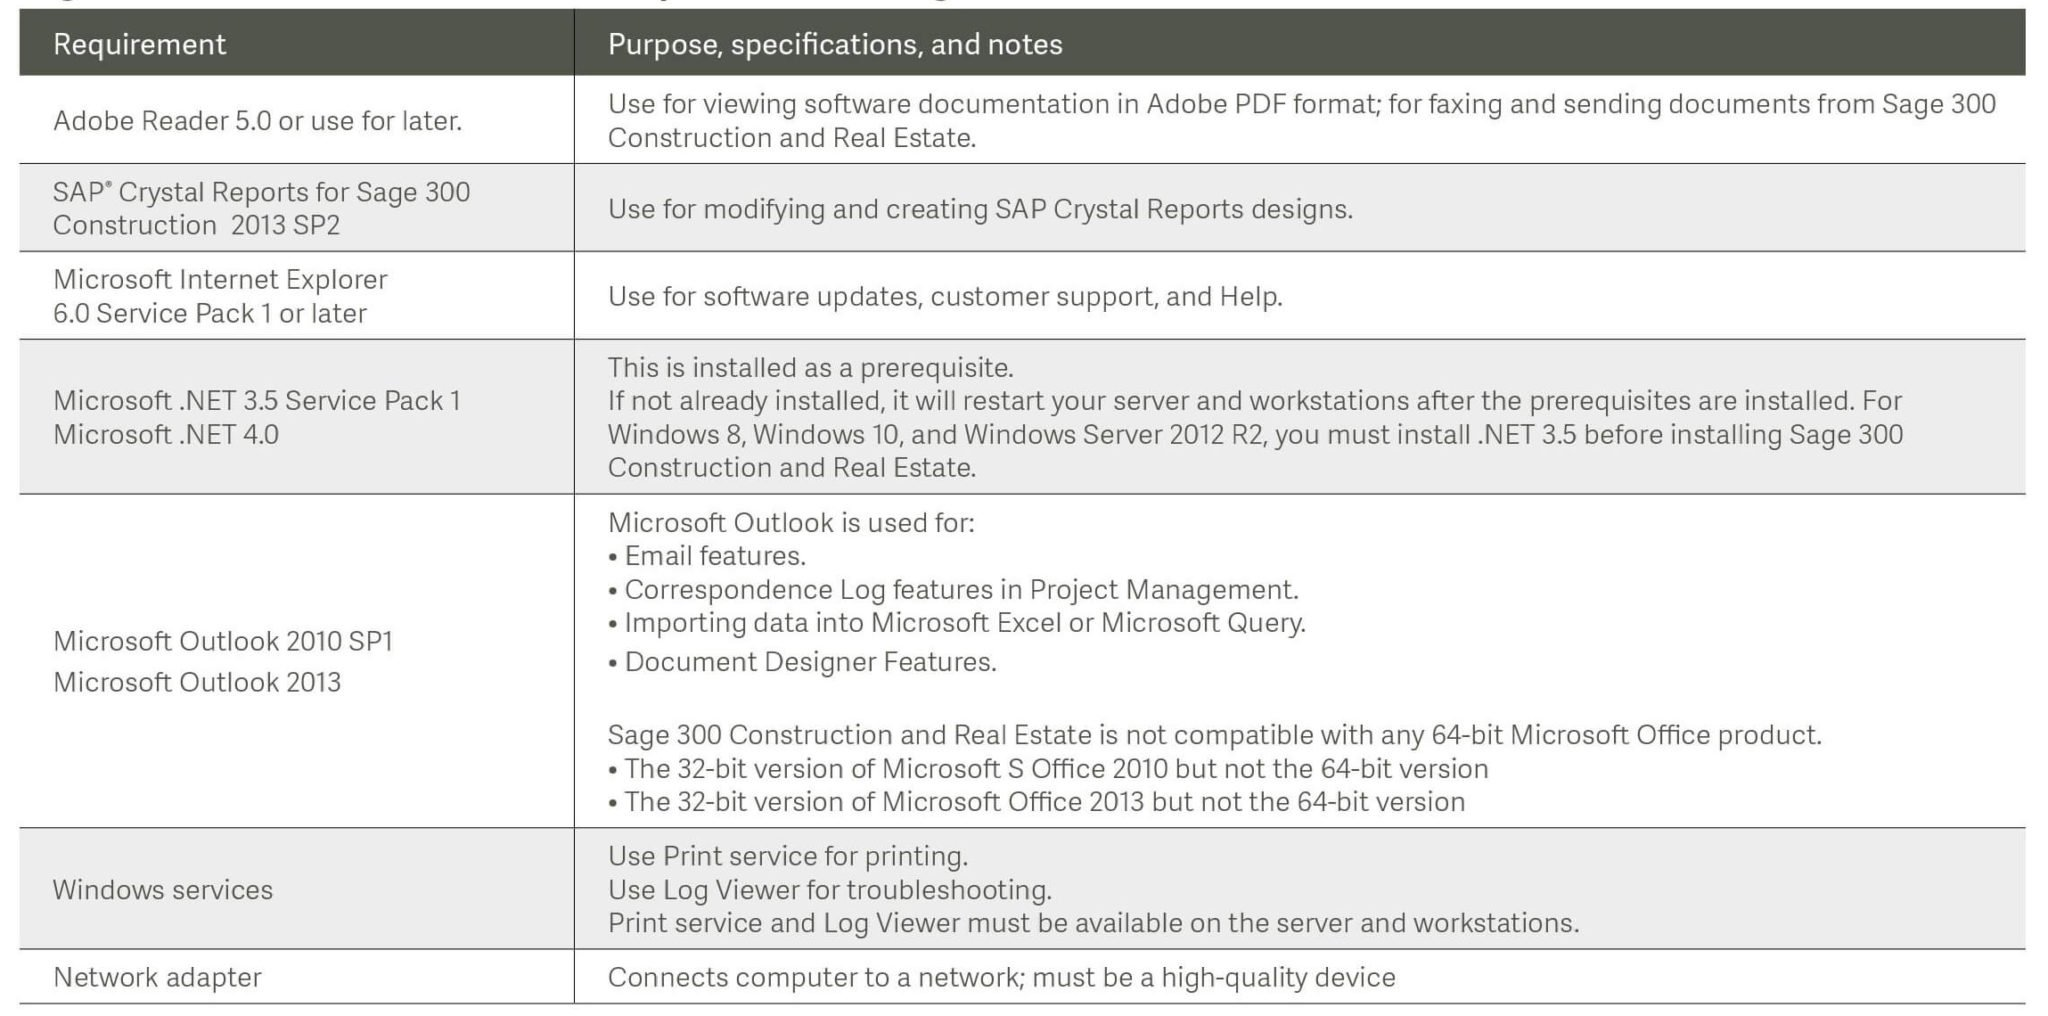 Sage 300 Construction (CRE) Additional Requirements Version 15.1